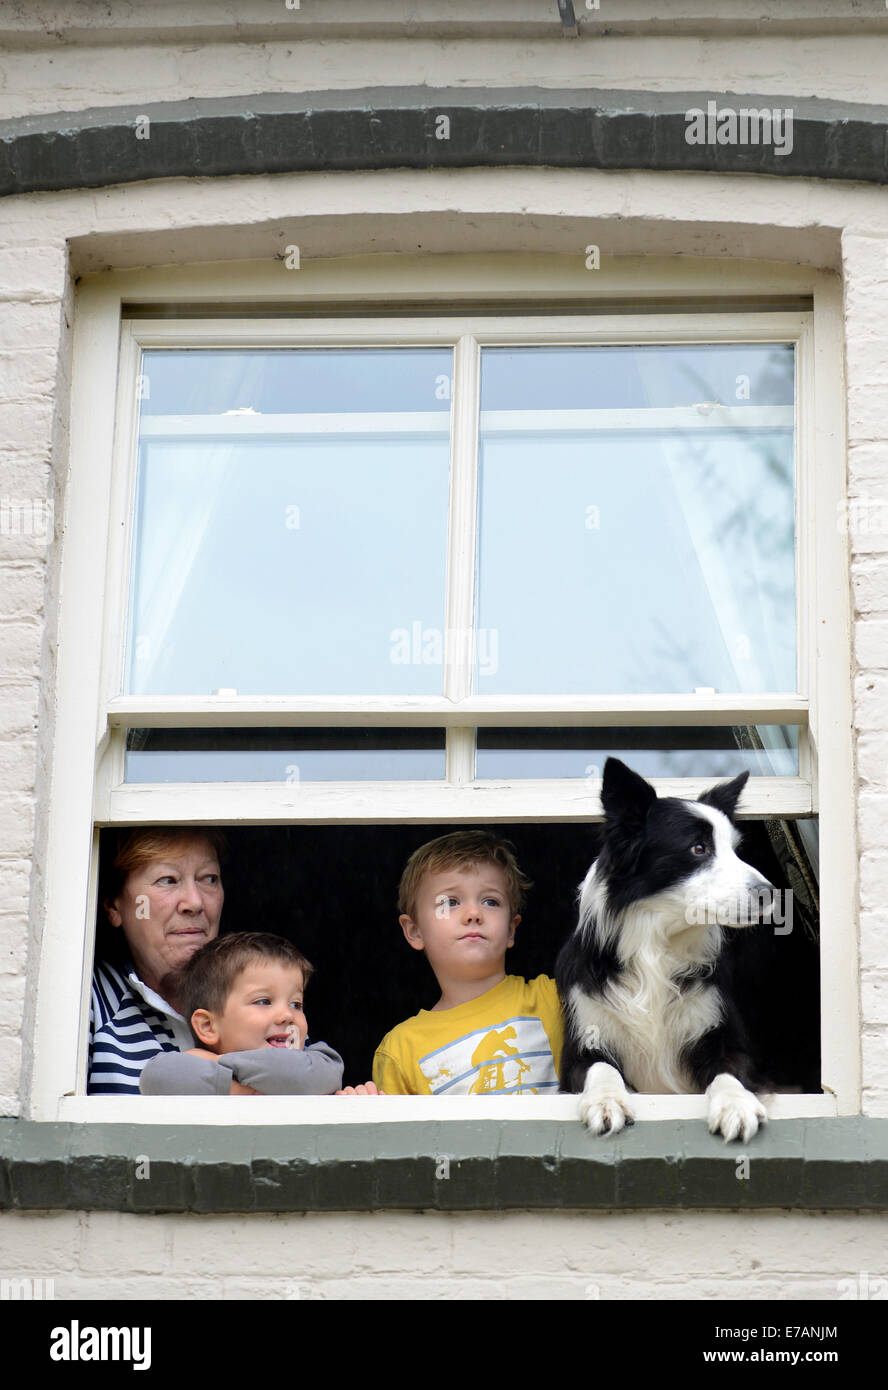 Family children with pet dog looking through home window Uk - Stock Image